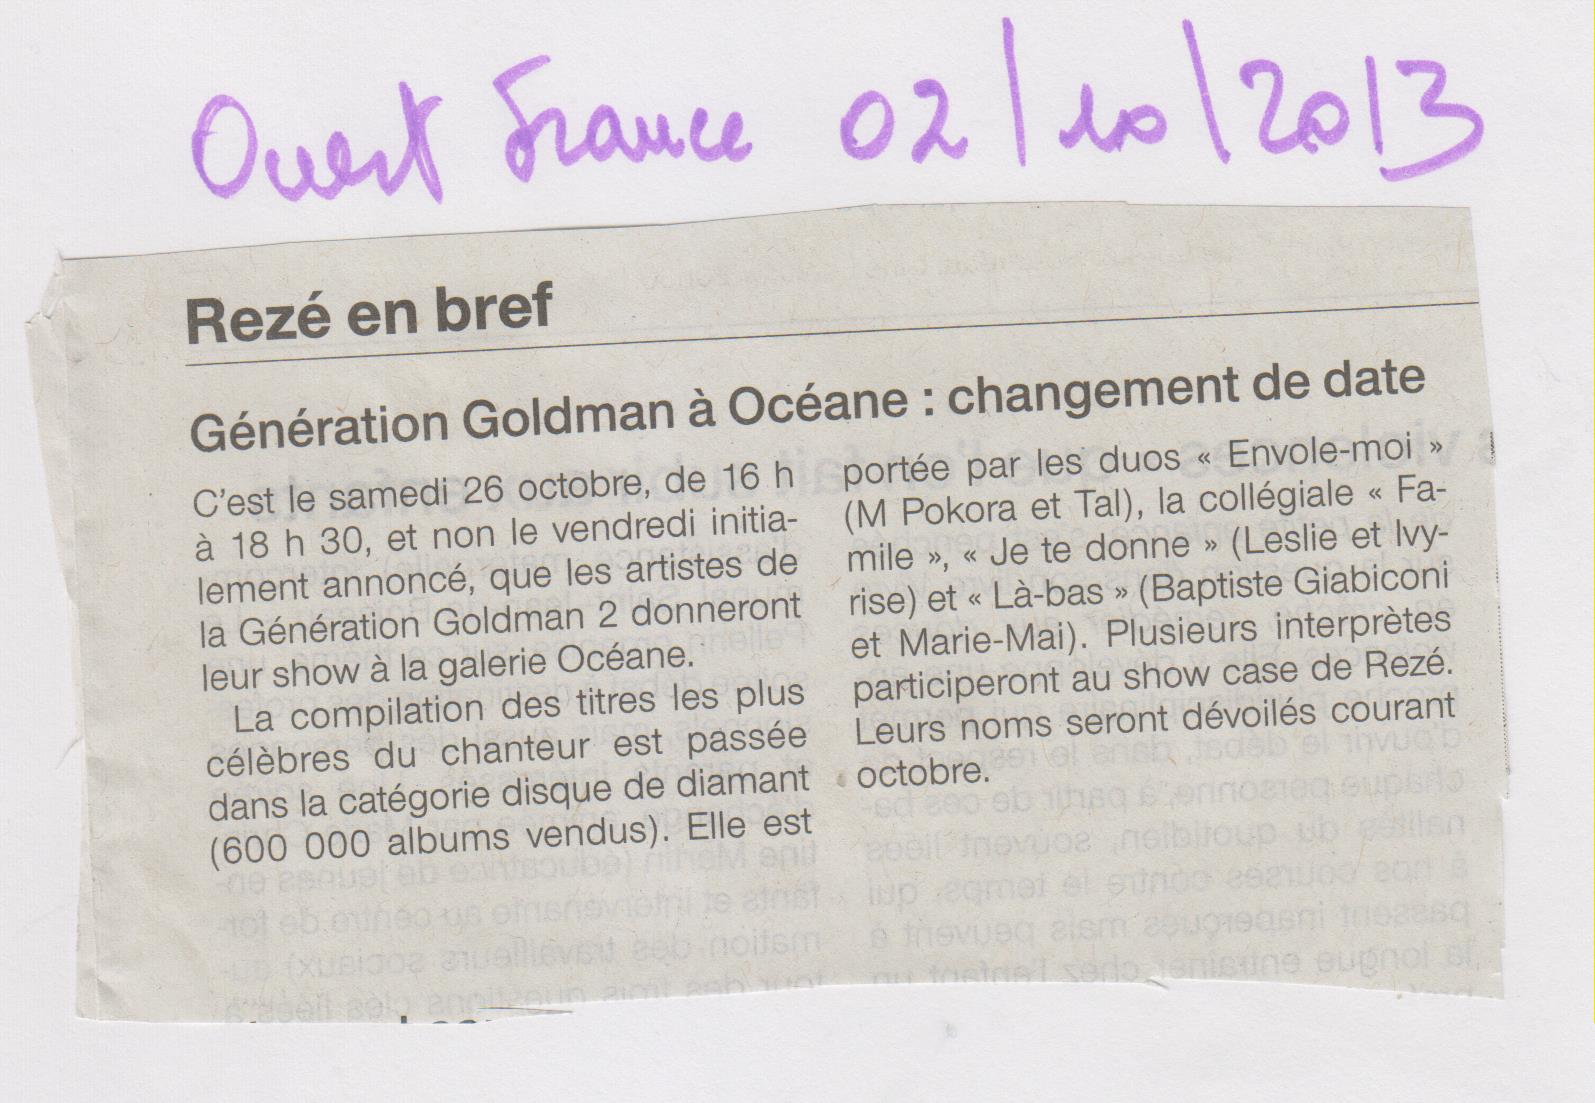 02.10.2013 - OUEST FRANCE - GENRATION GOLDMAN